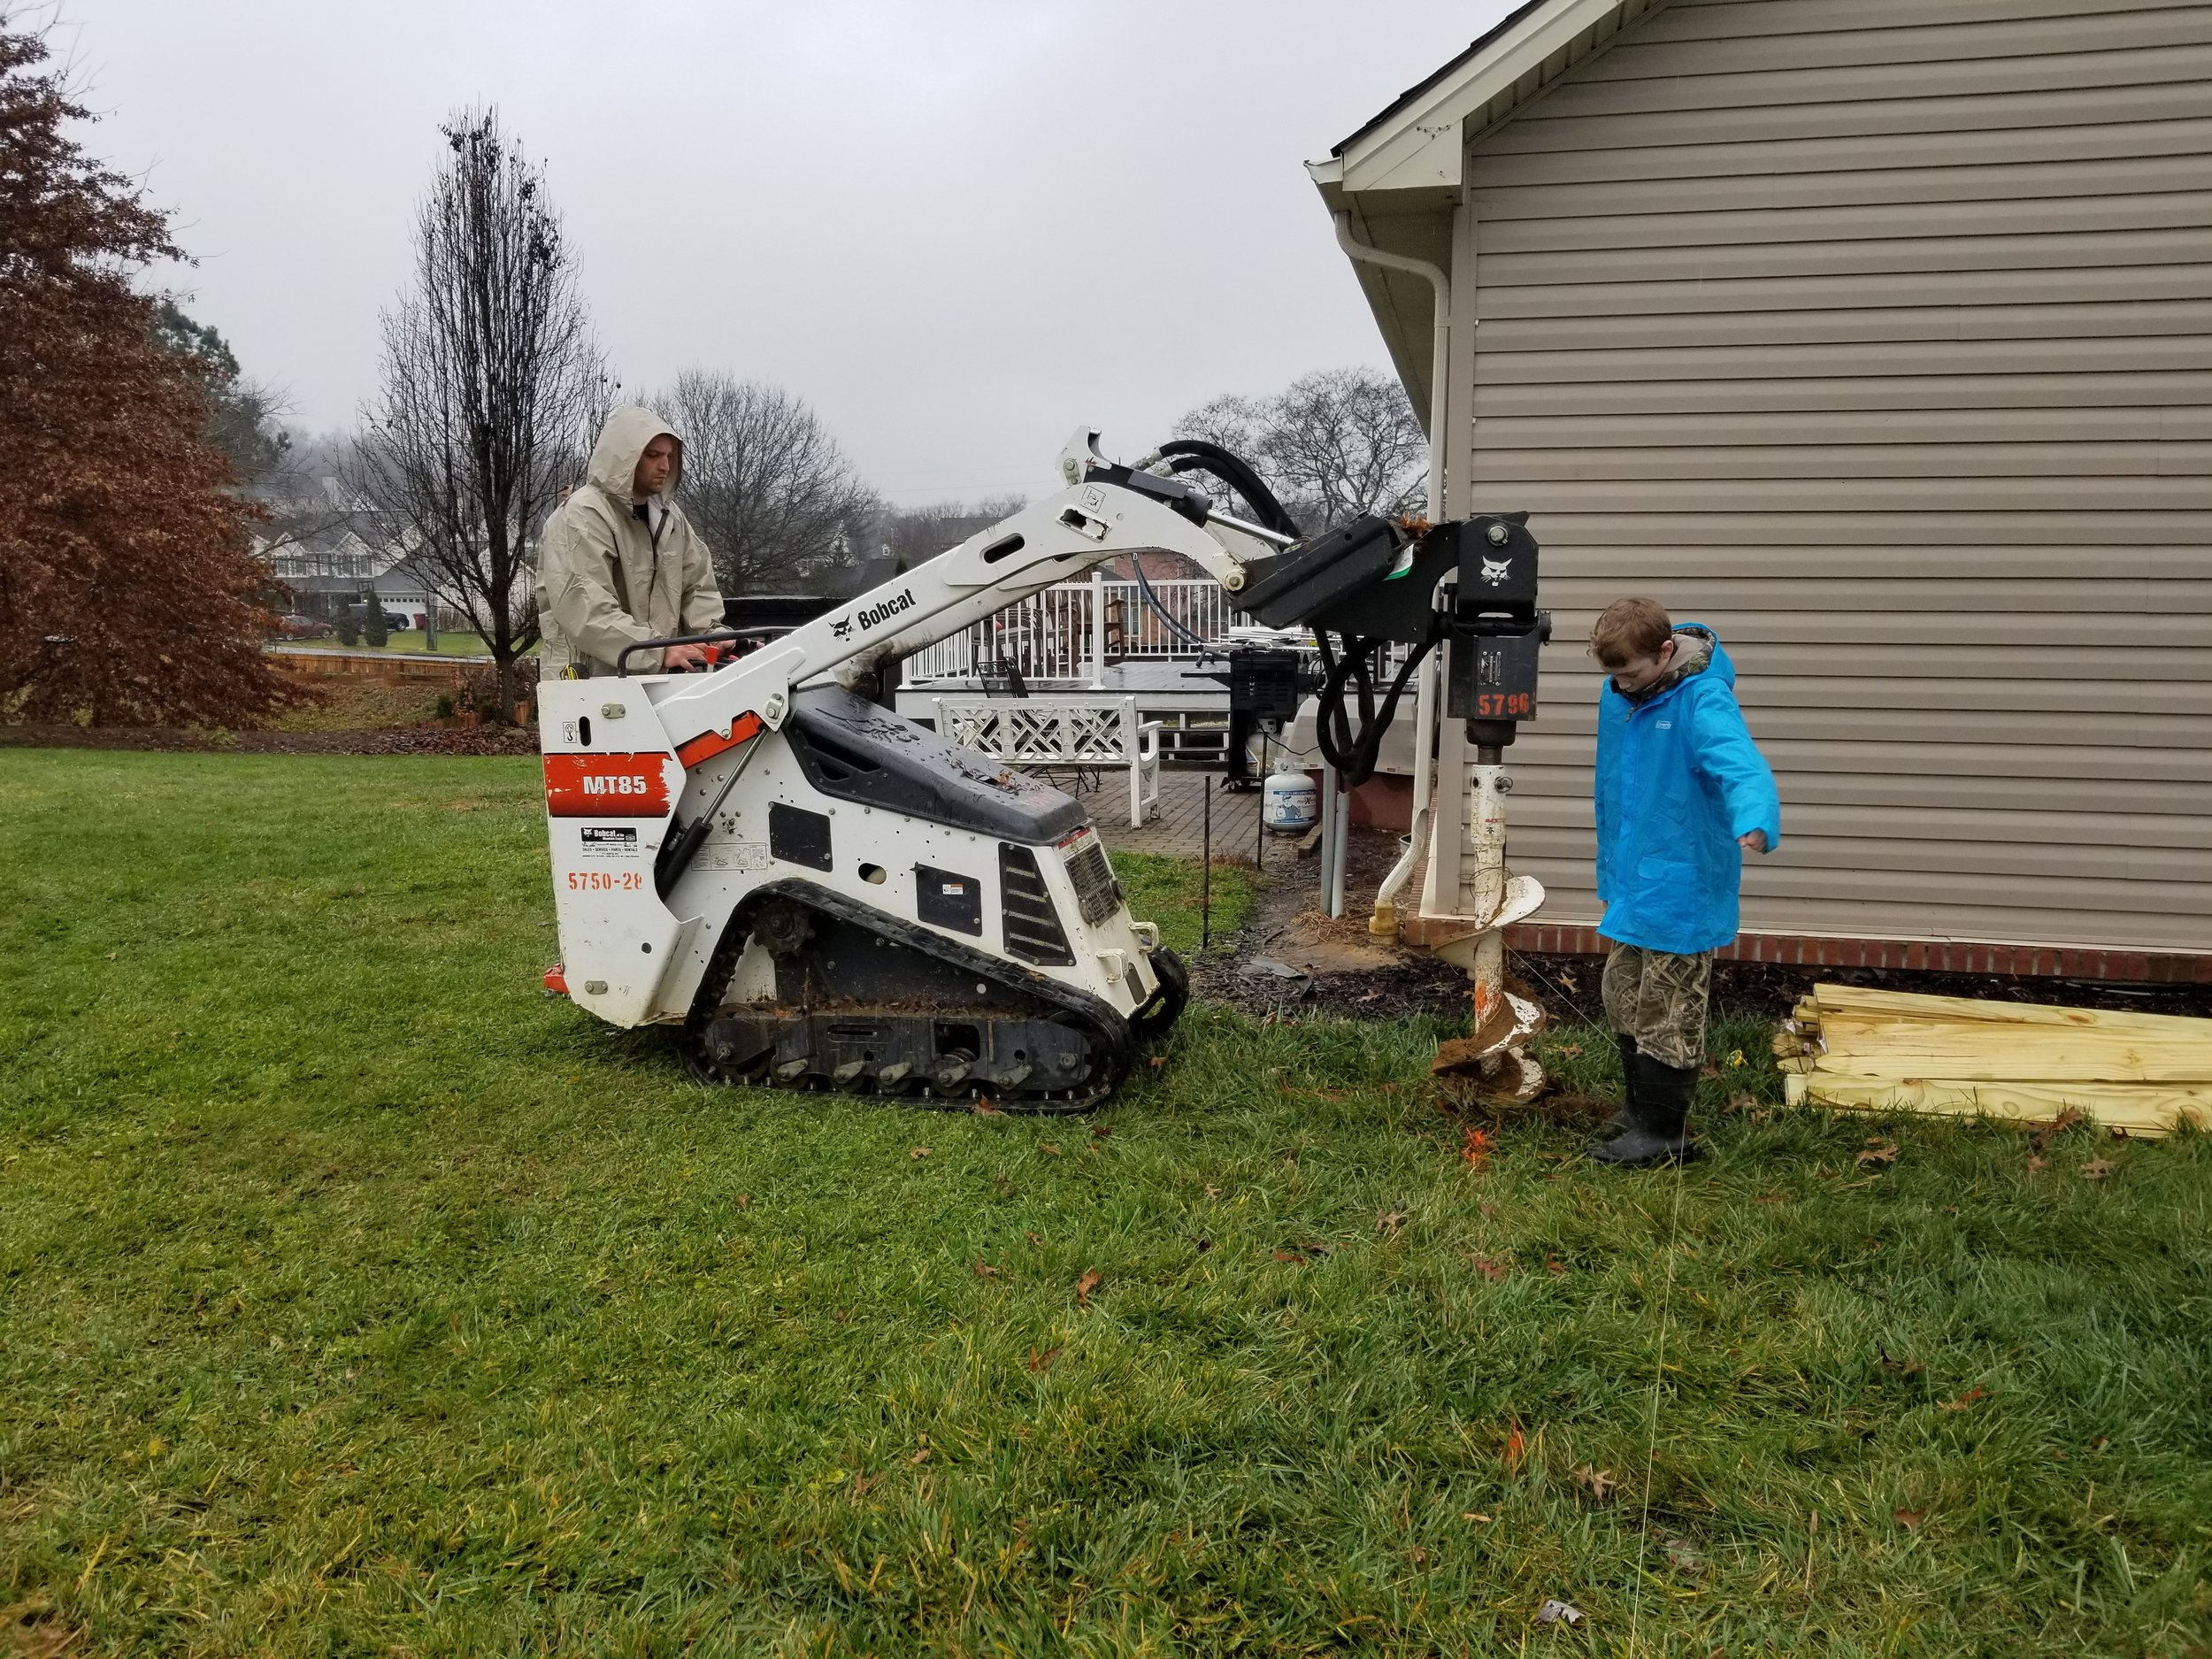 Digging Holes With Bobcat (Johnson City, Tn)